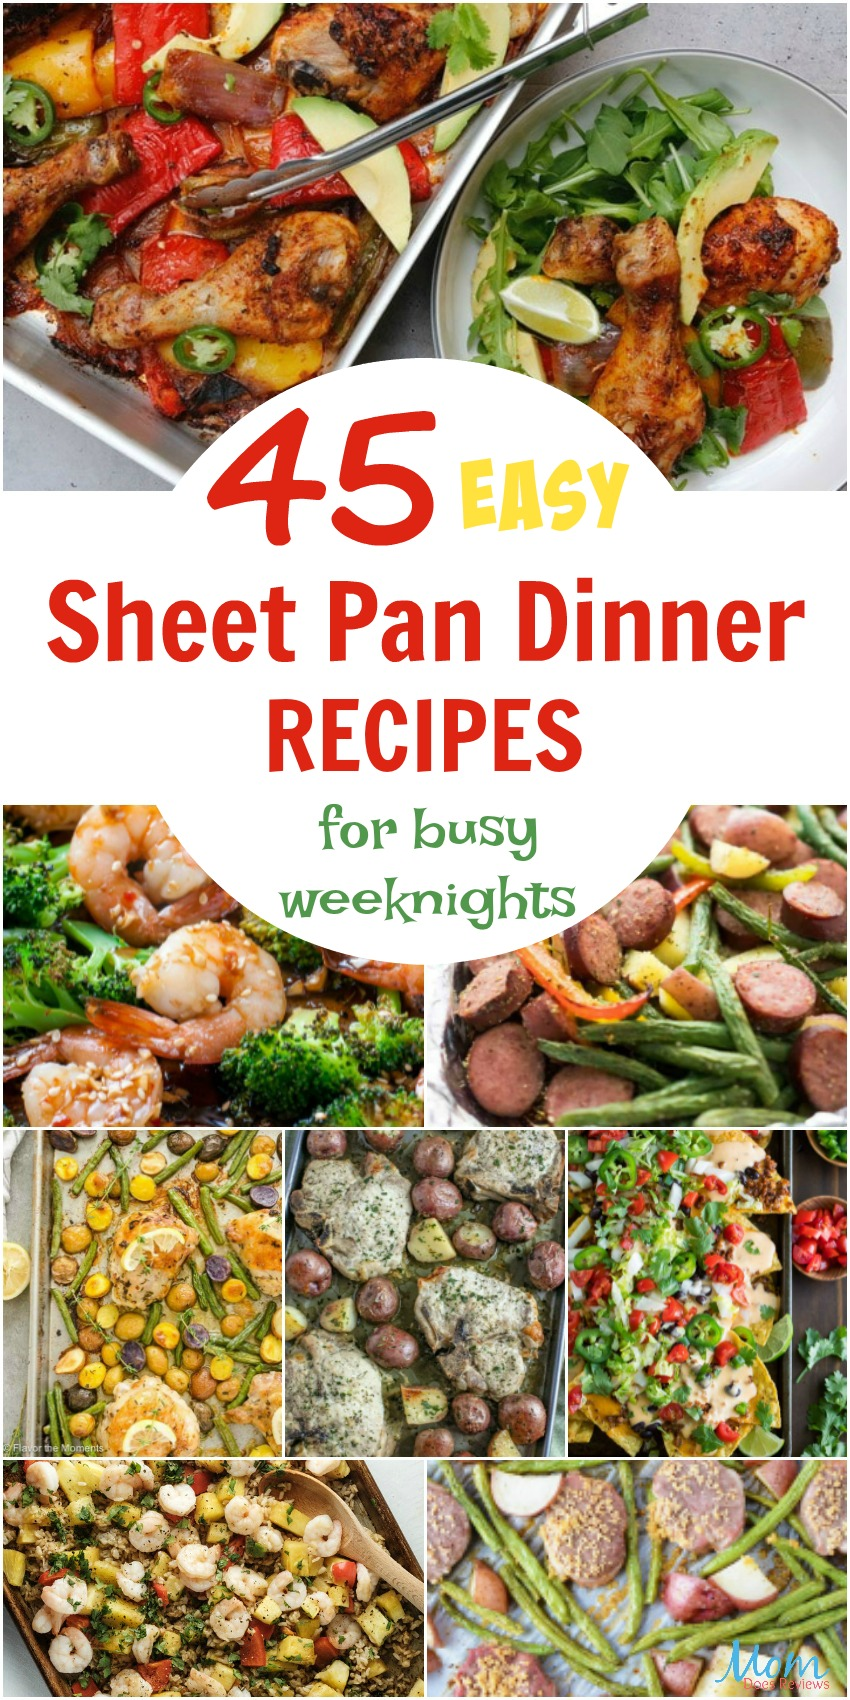 45 Easy Sheet Pan Dinner Recipes for Busy Weeknights #recipes #sheetpanrecipes #easymeals